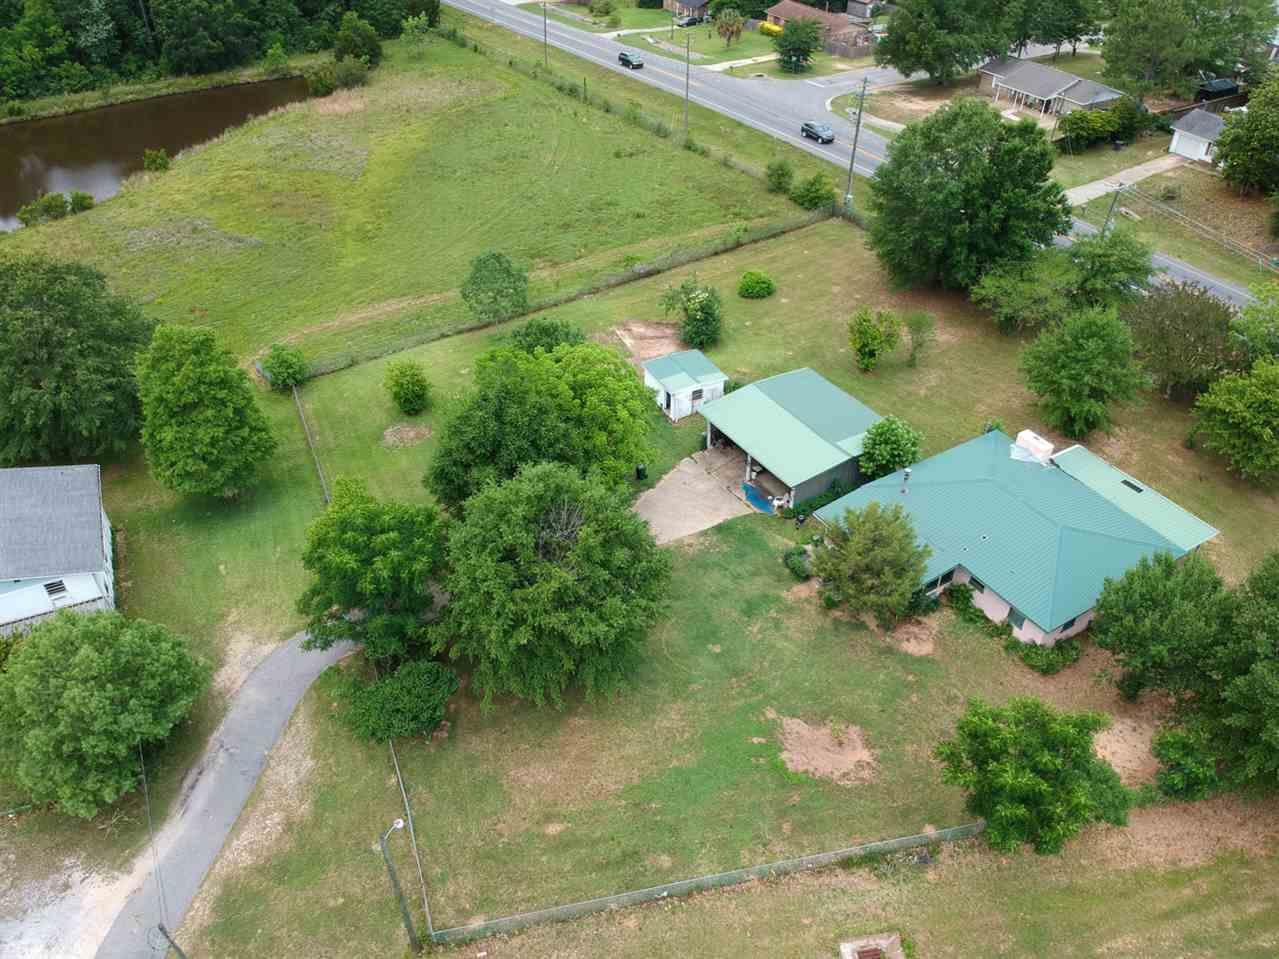 305 W Kingsfield Rd, Cantonment, FL 32533